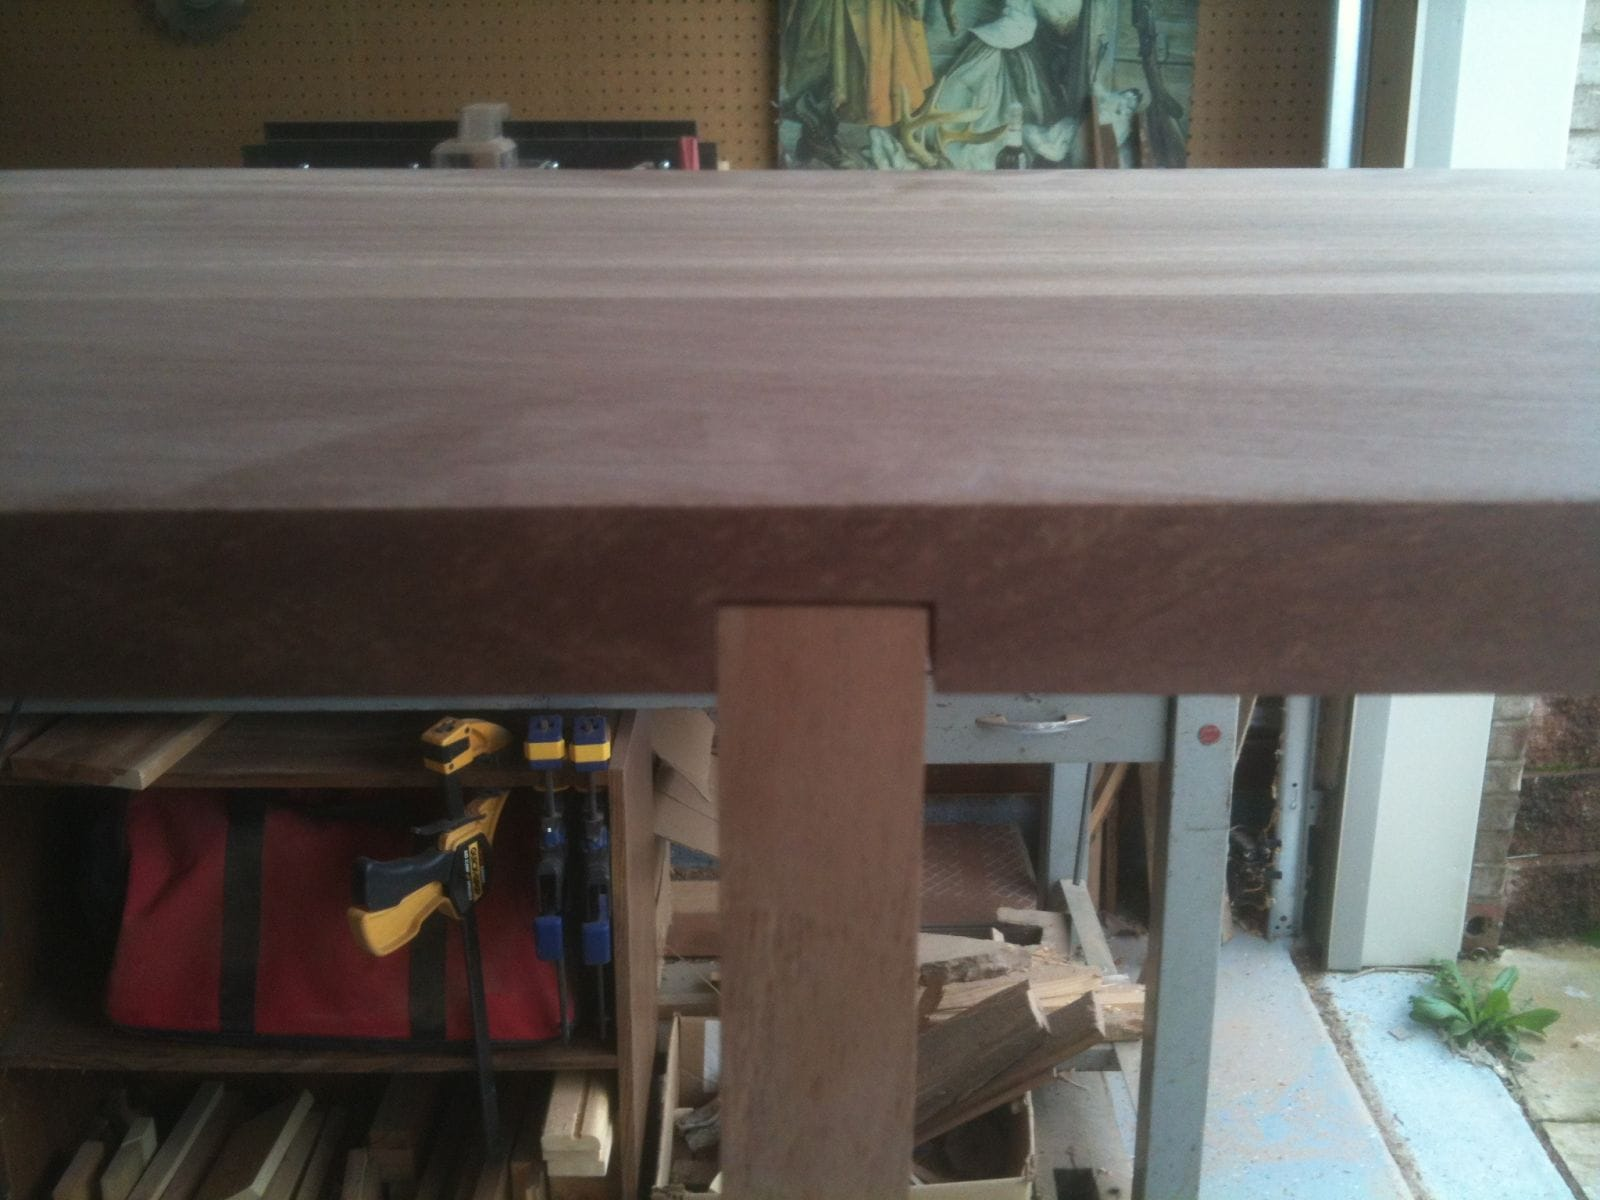 shelf joint close up - back